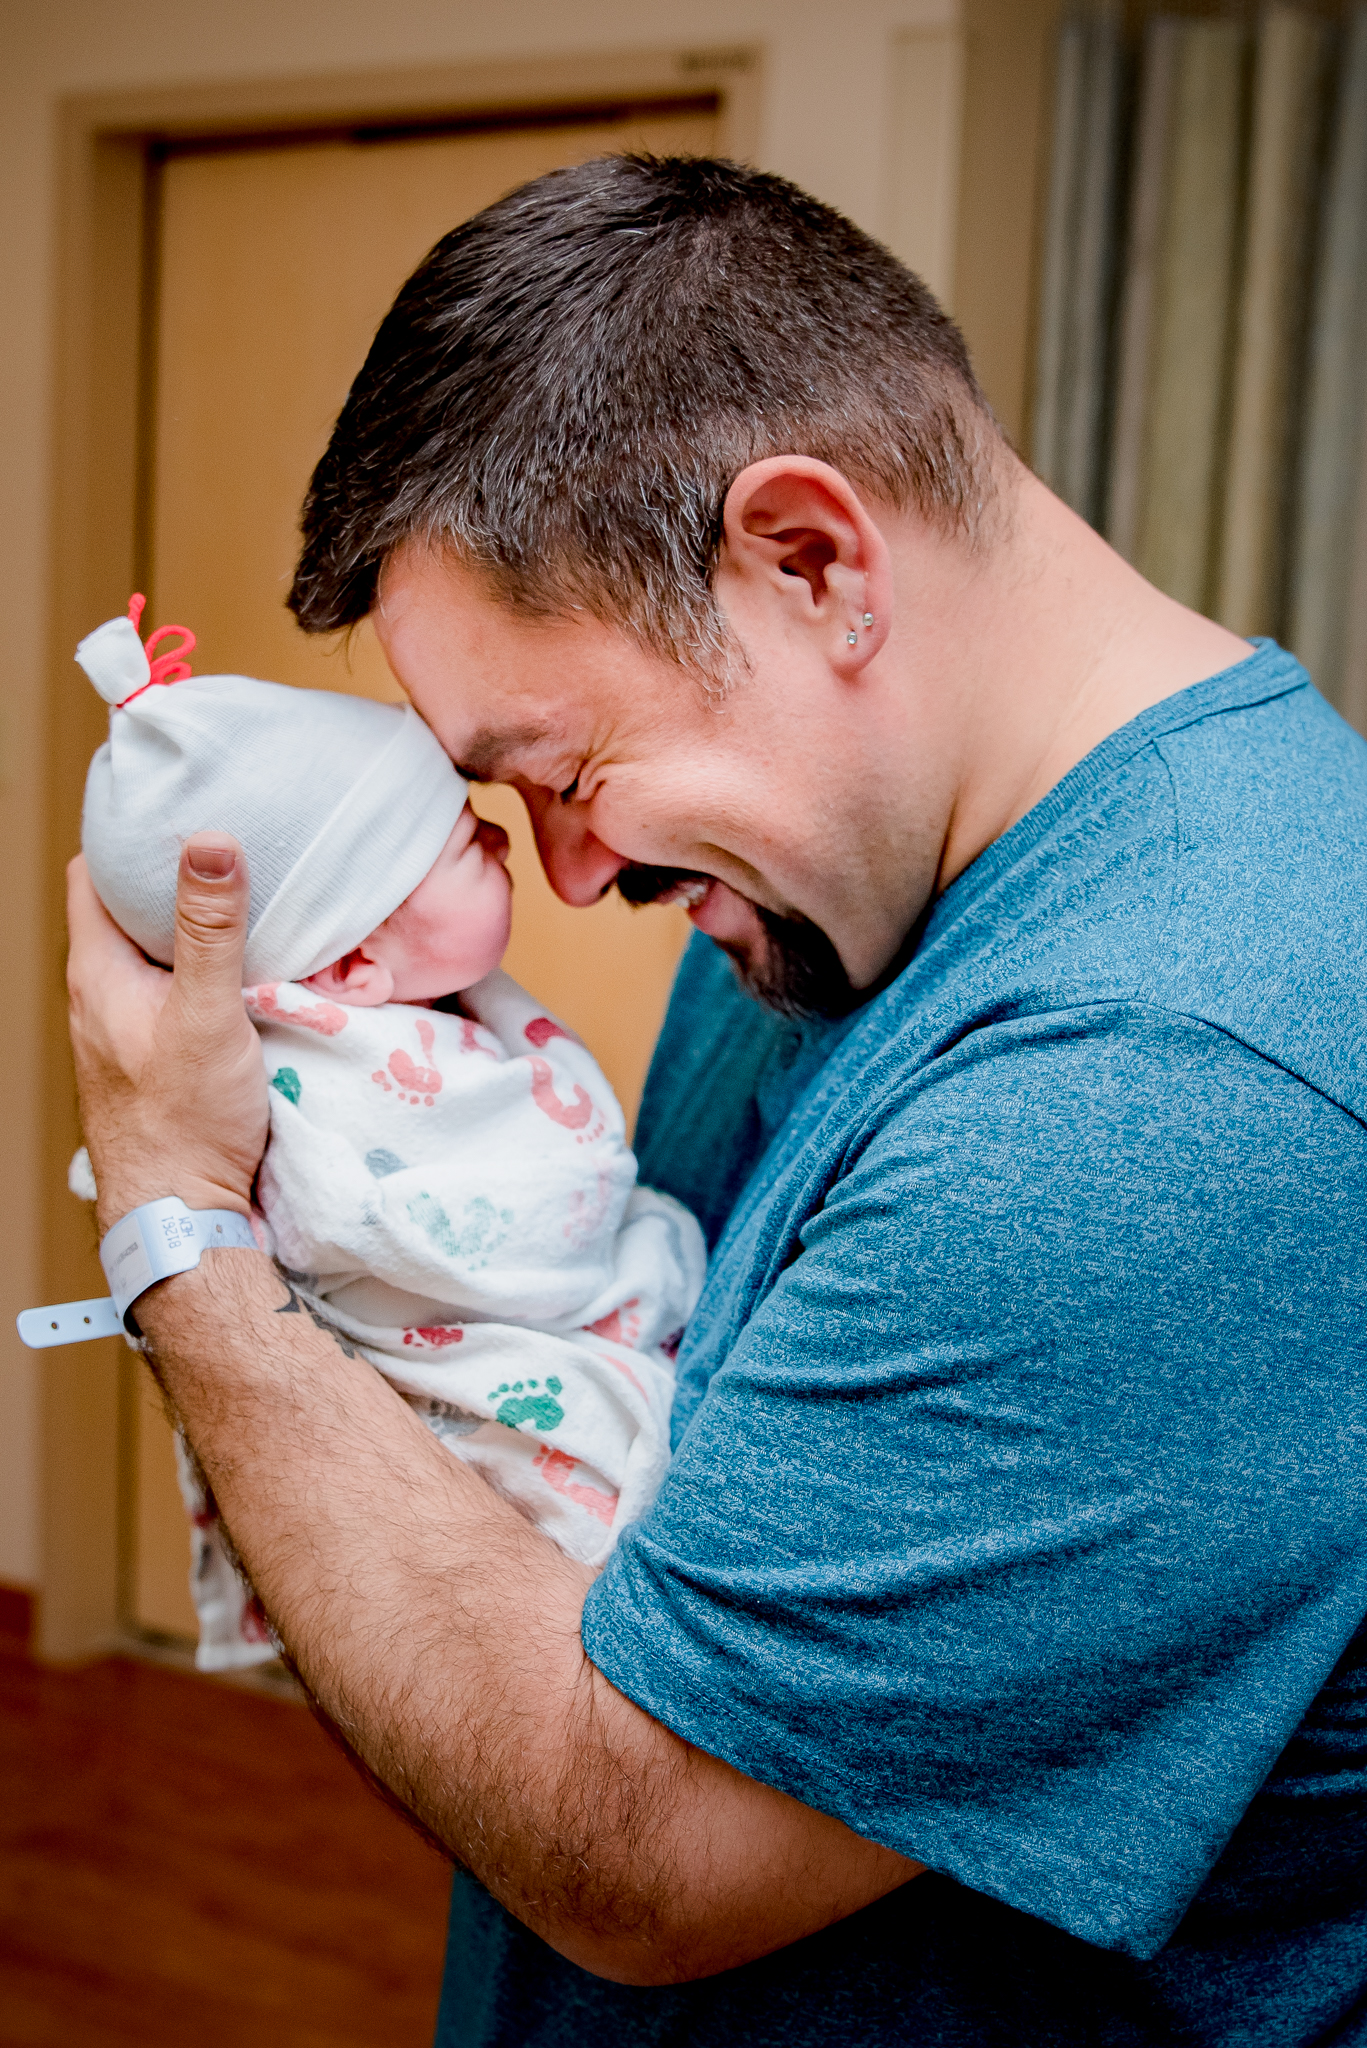 There is nothing better than holding your son for the first time!